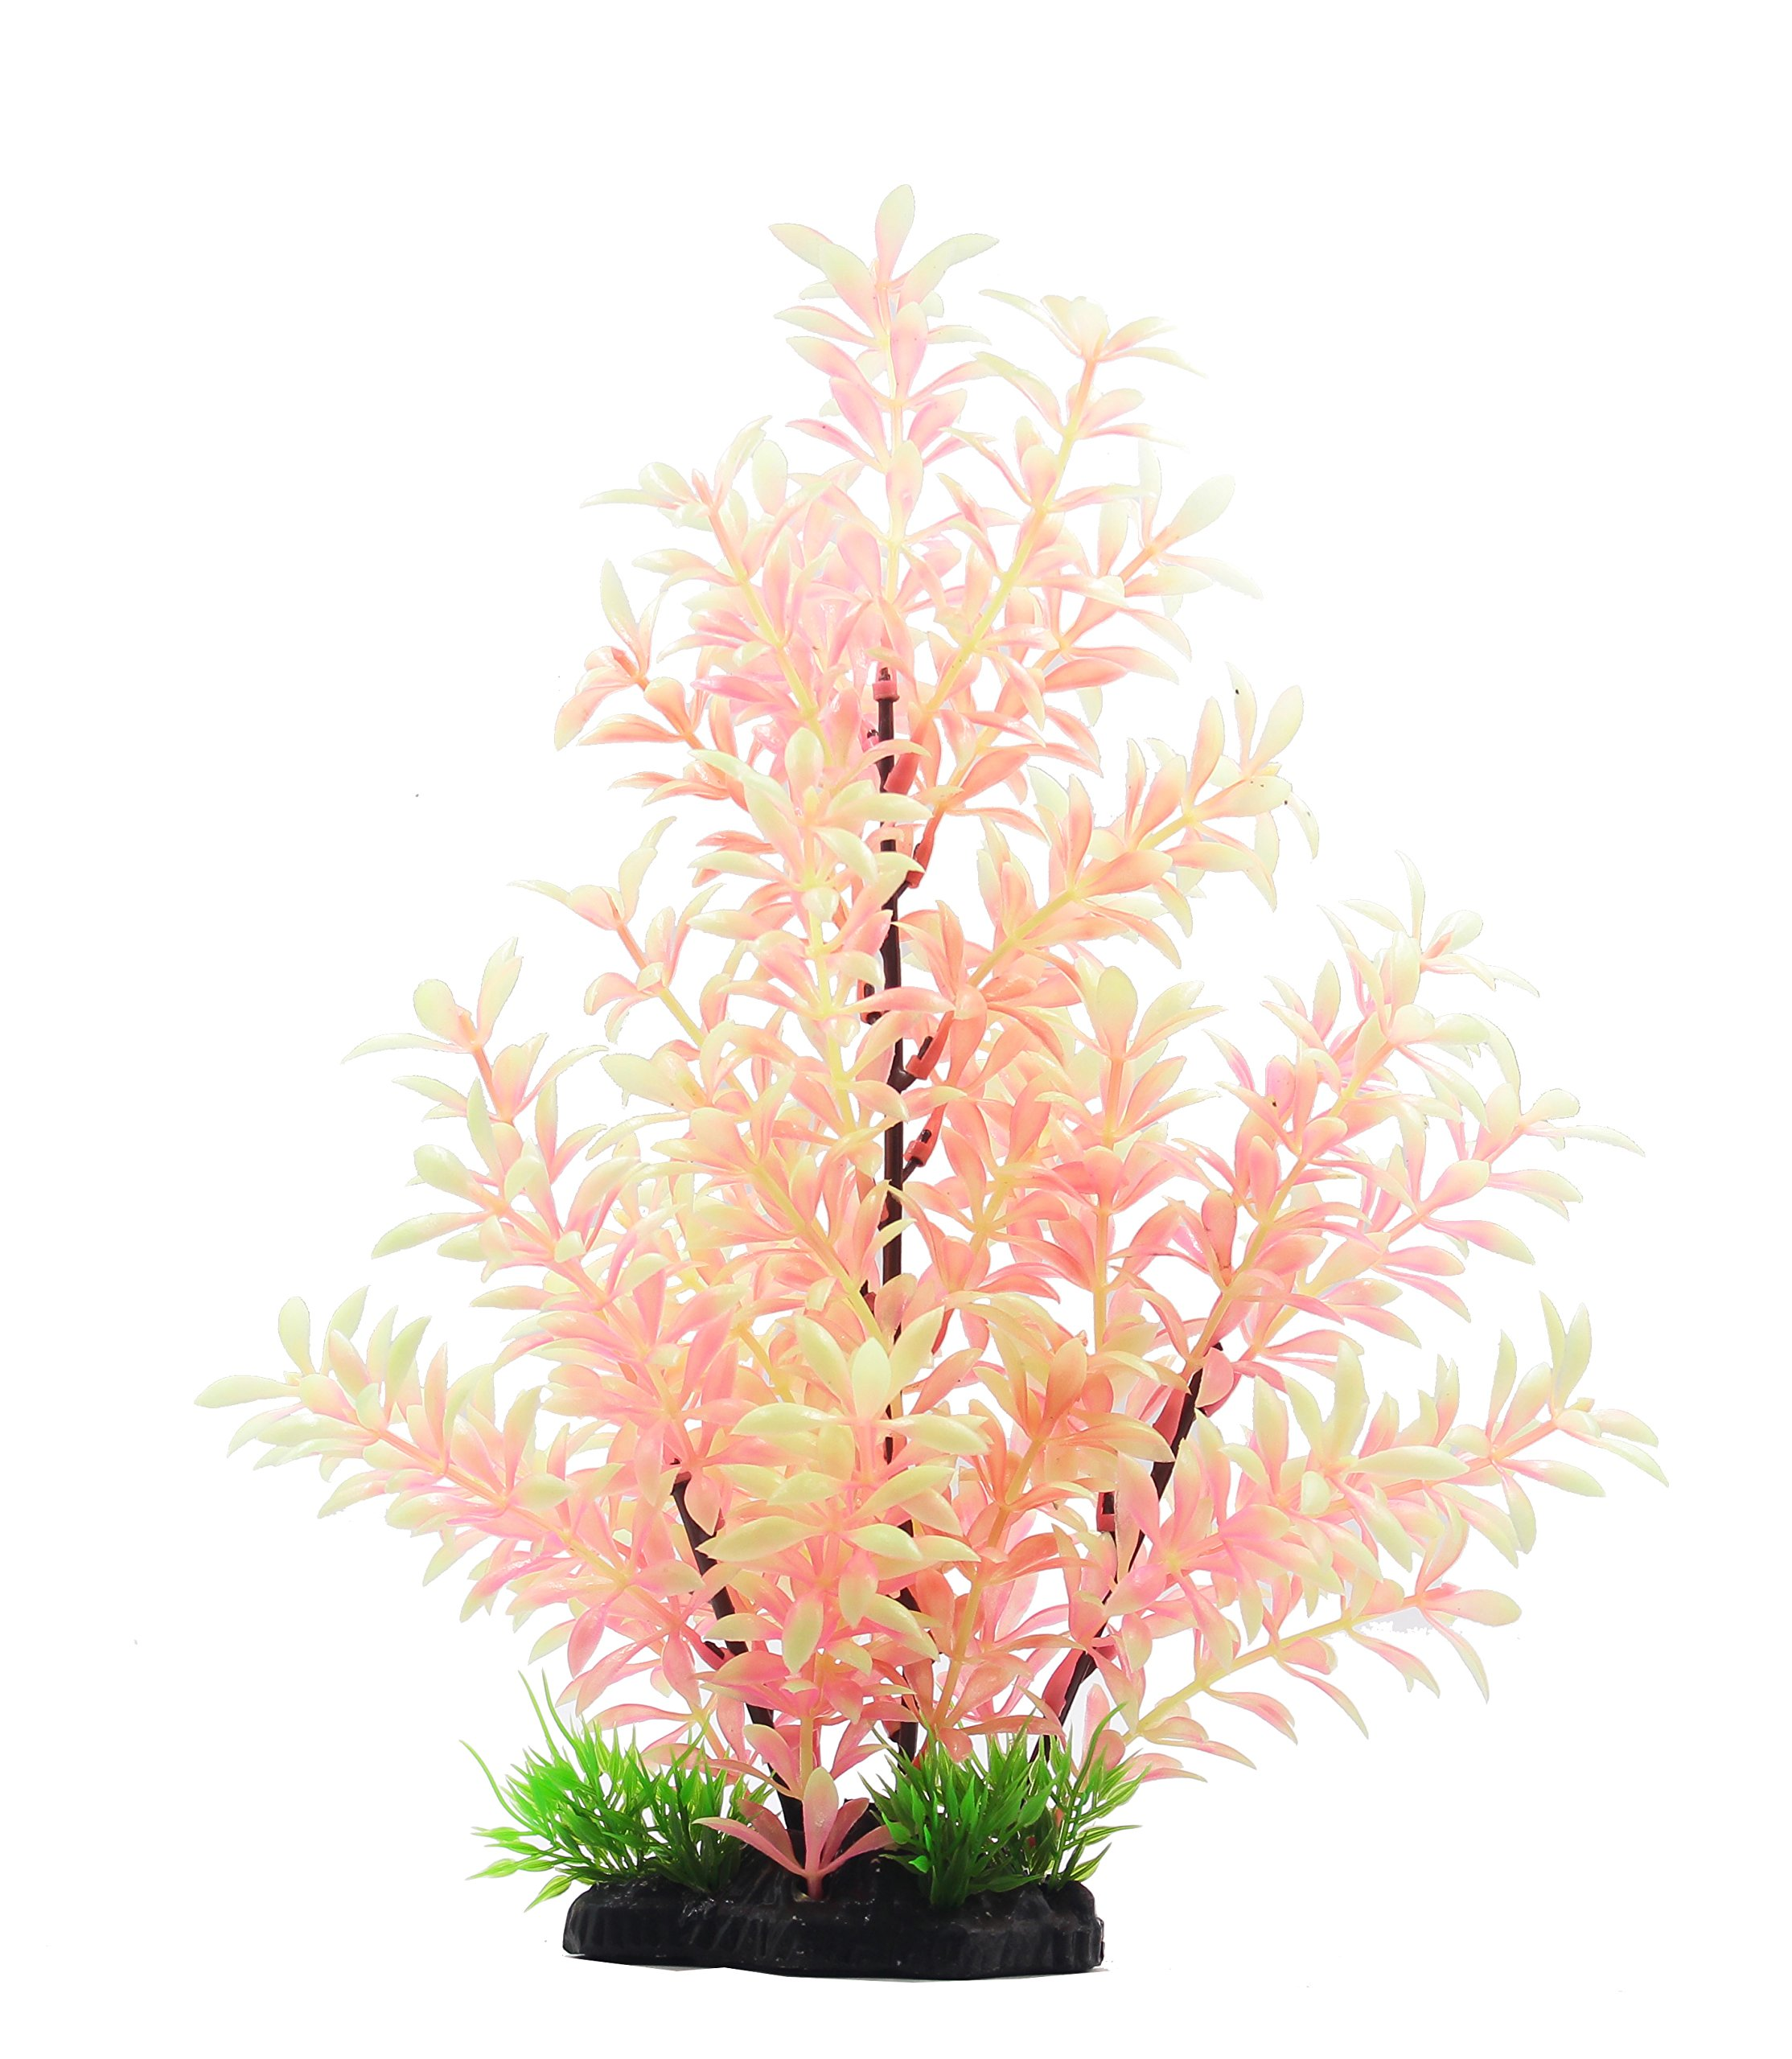 ZAZALUM Luminous Aquarium Decor Ornaments, Aquarium Artificial Plastic Plants For Aquascaping (Green-12in)